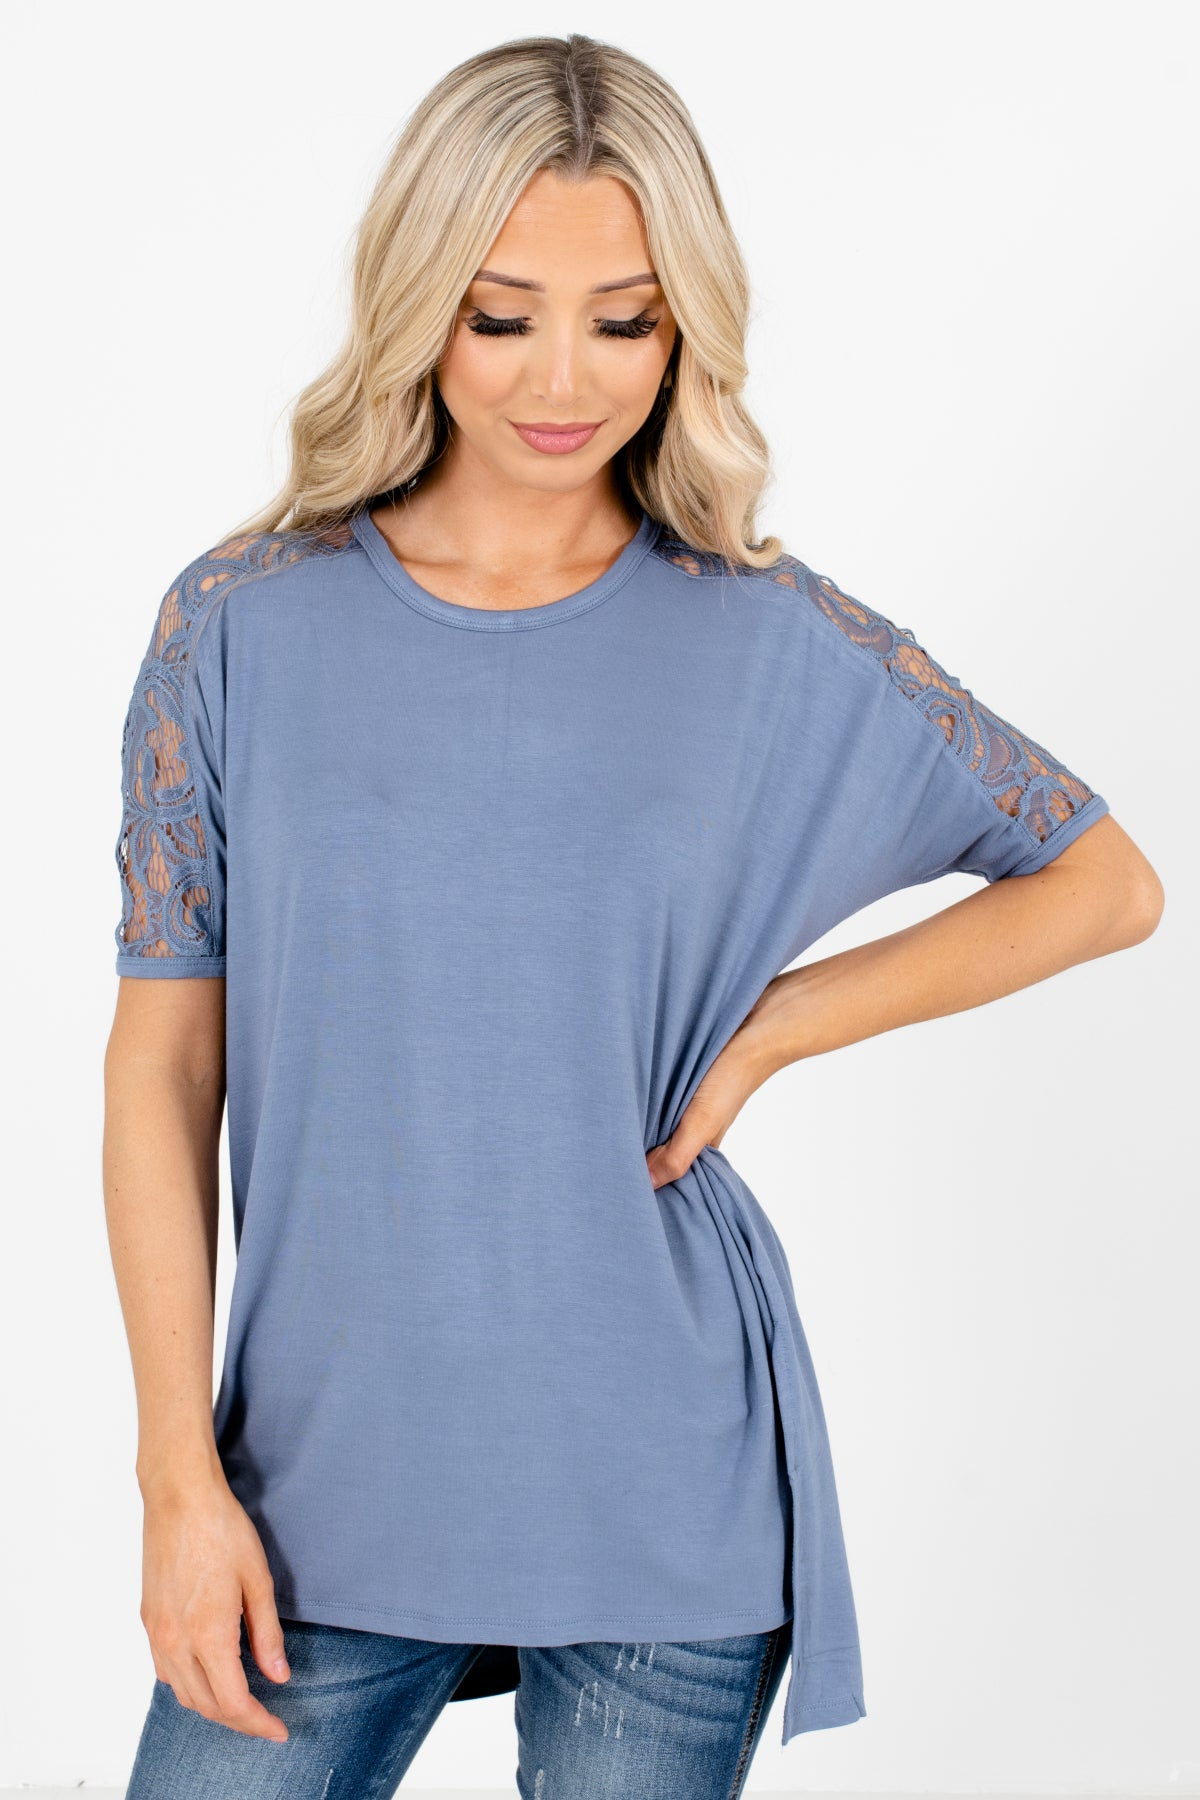 Blue Lace Detailed Boutique Tops for Women